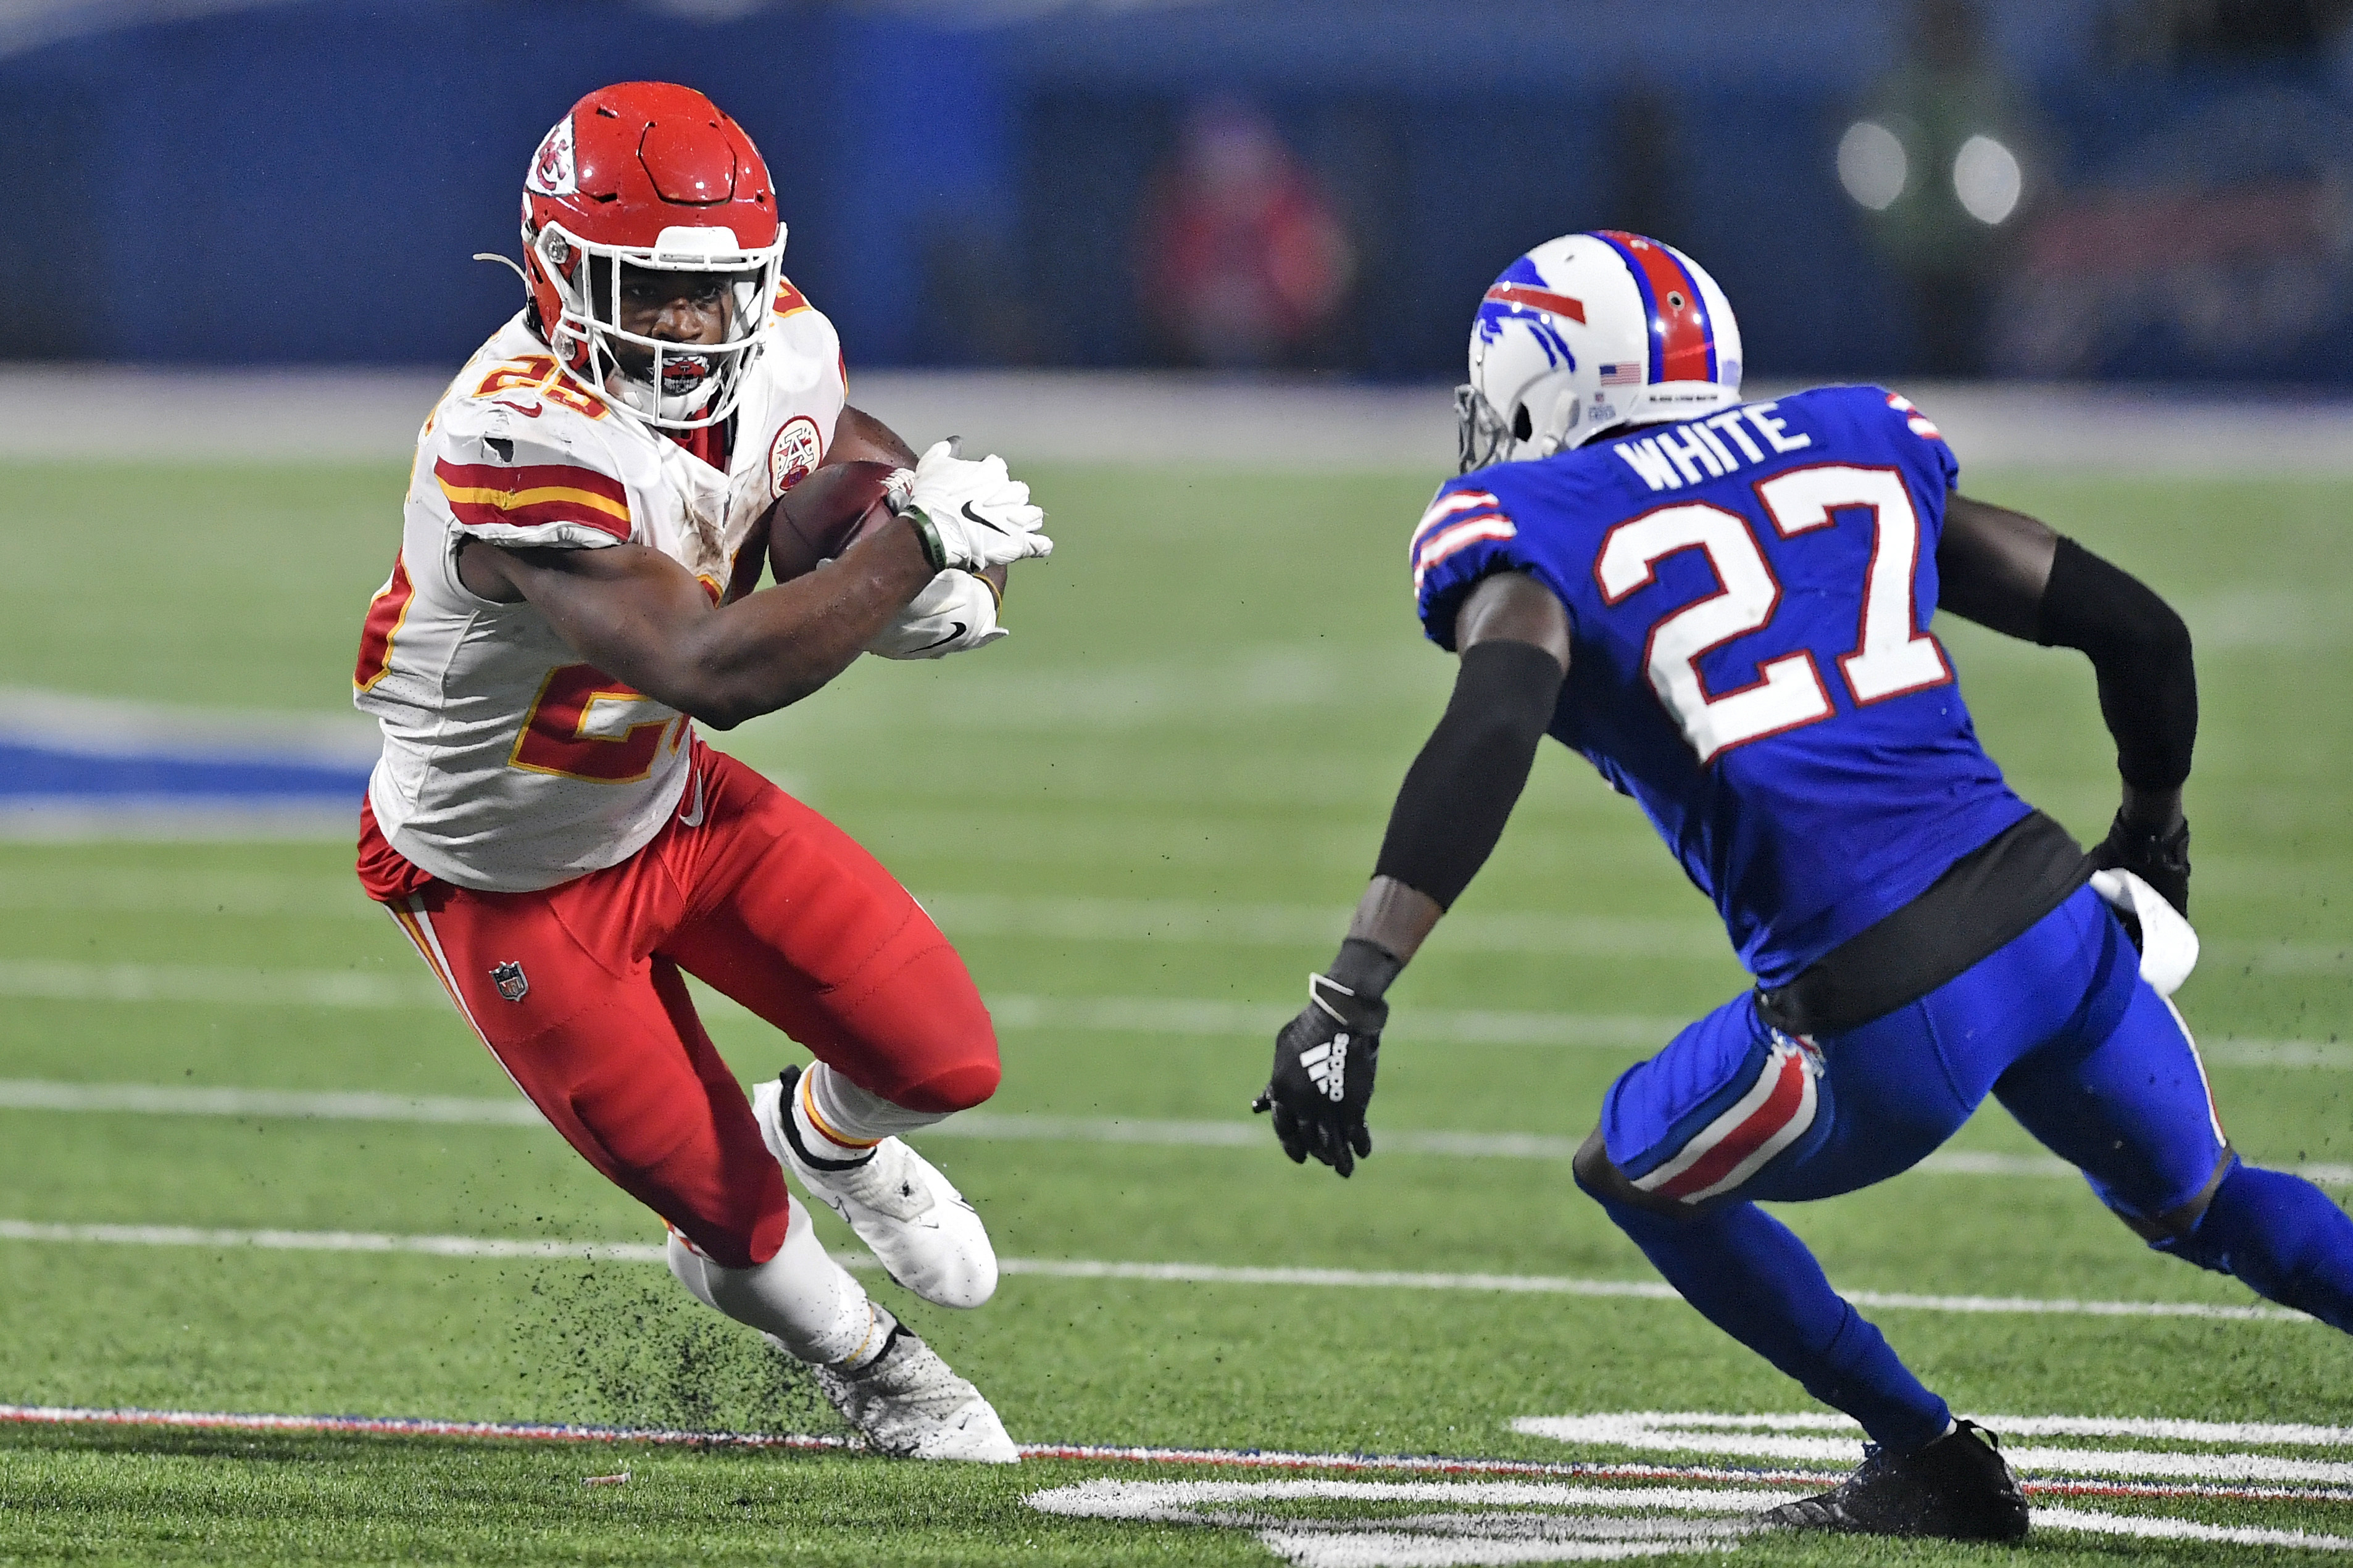 Clyde Edwards-Helaire, left, had 161 rushing yards against the Bills in Week 6.